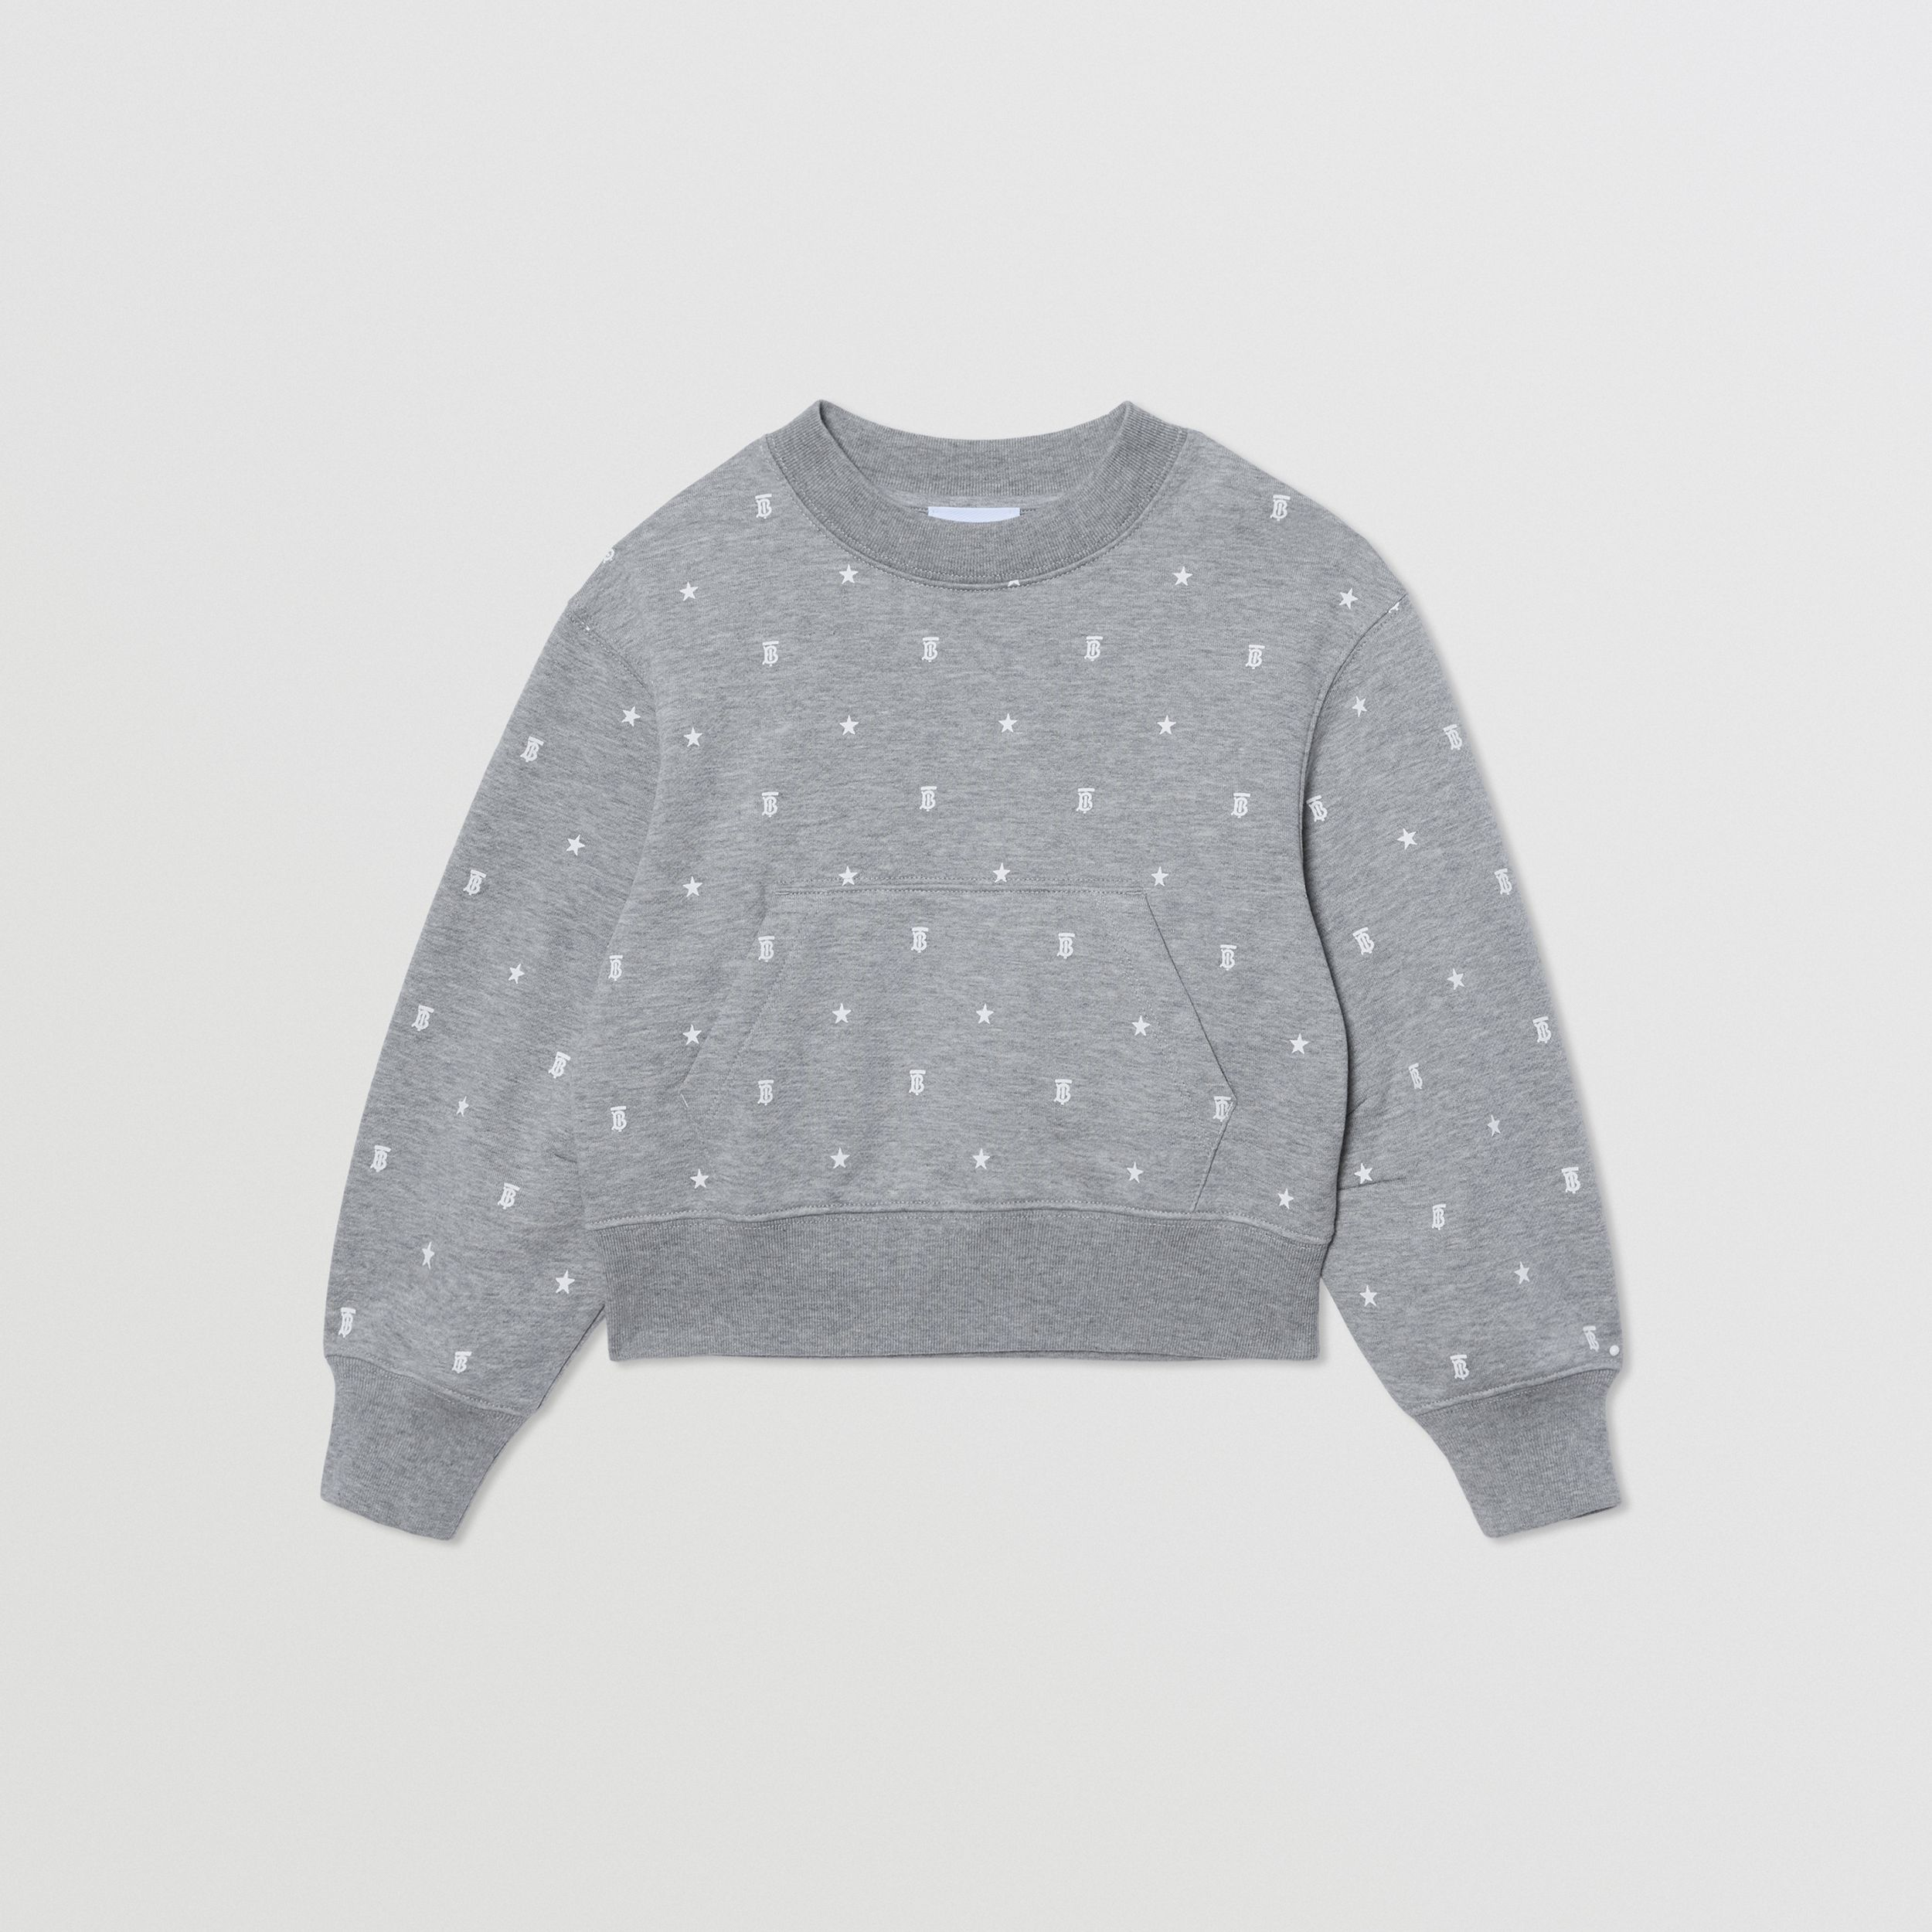 Star and Monogram Motif Cotton Sweatshirt in Grey | Burberry - 1